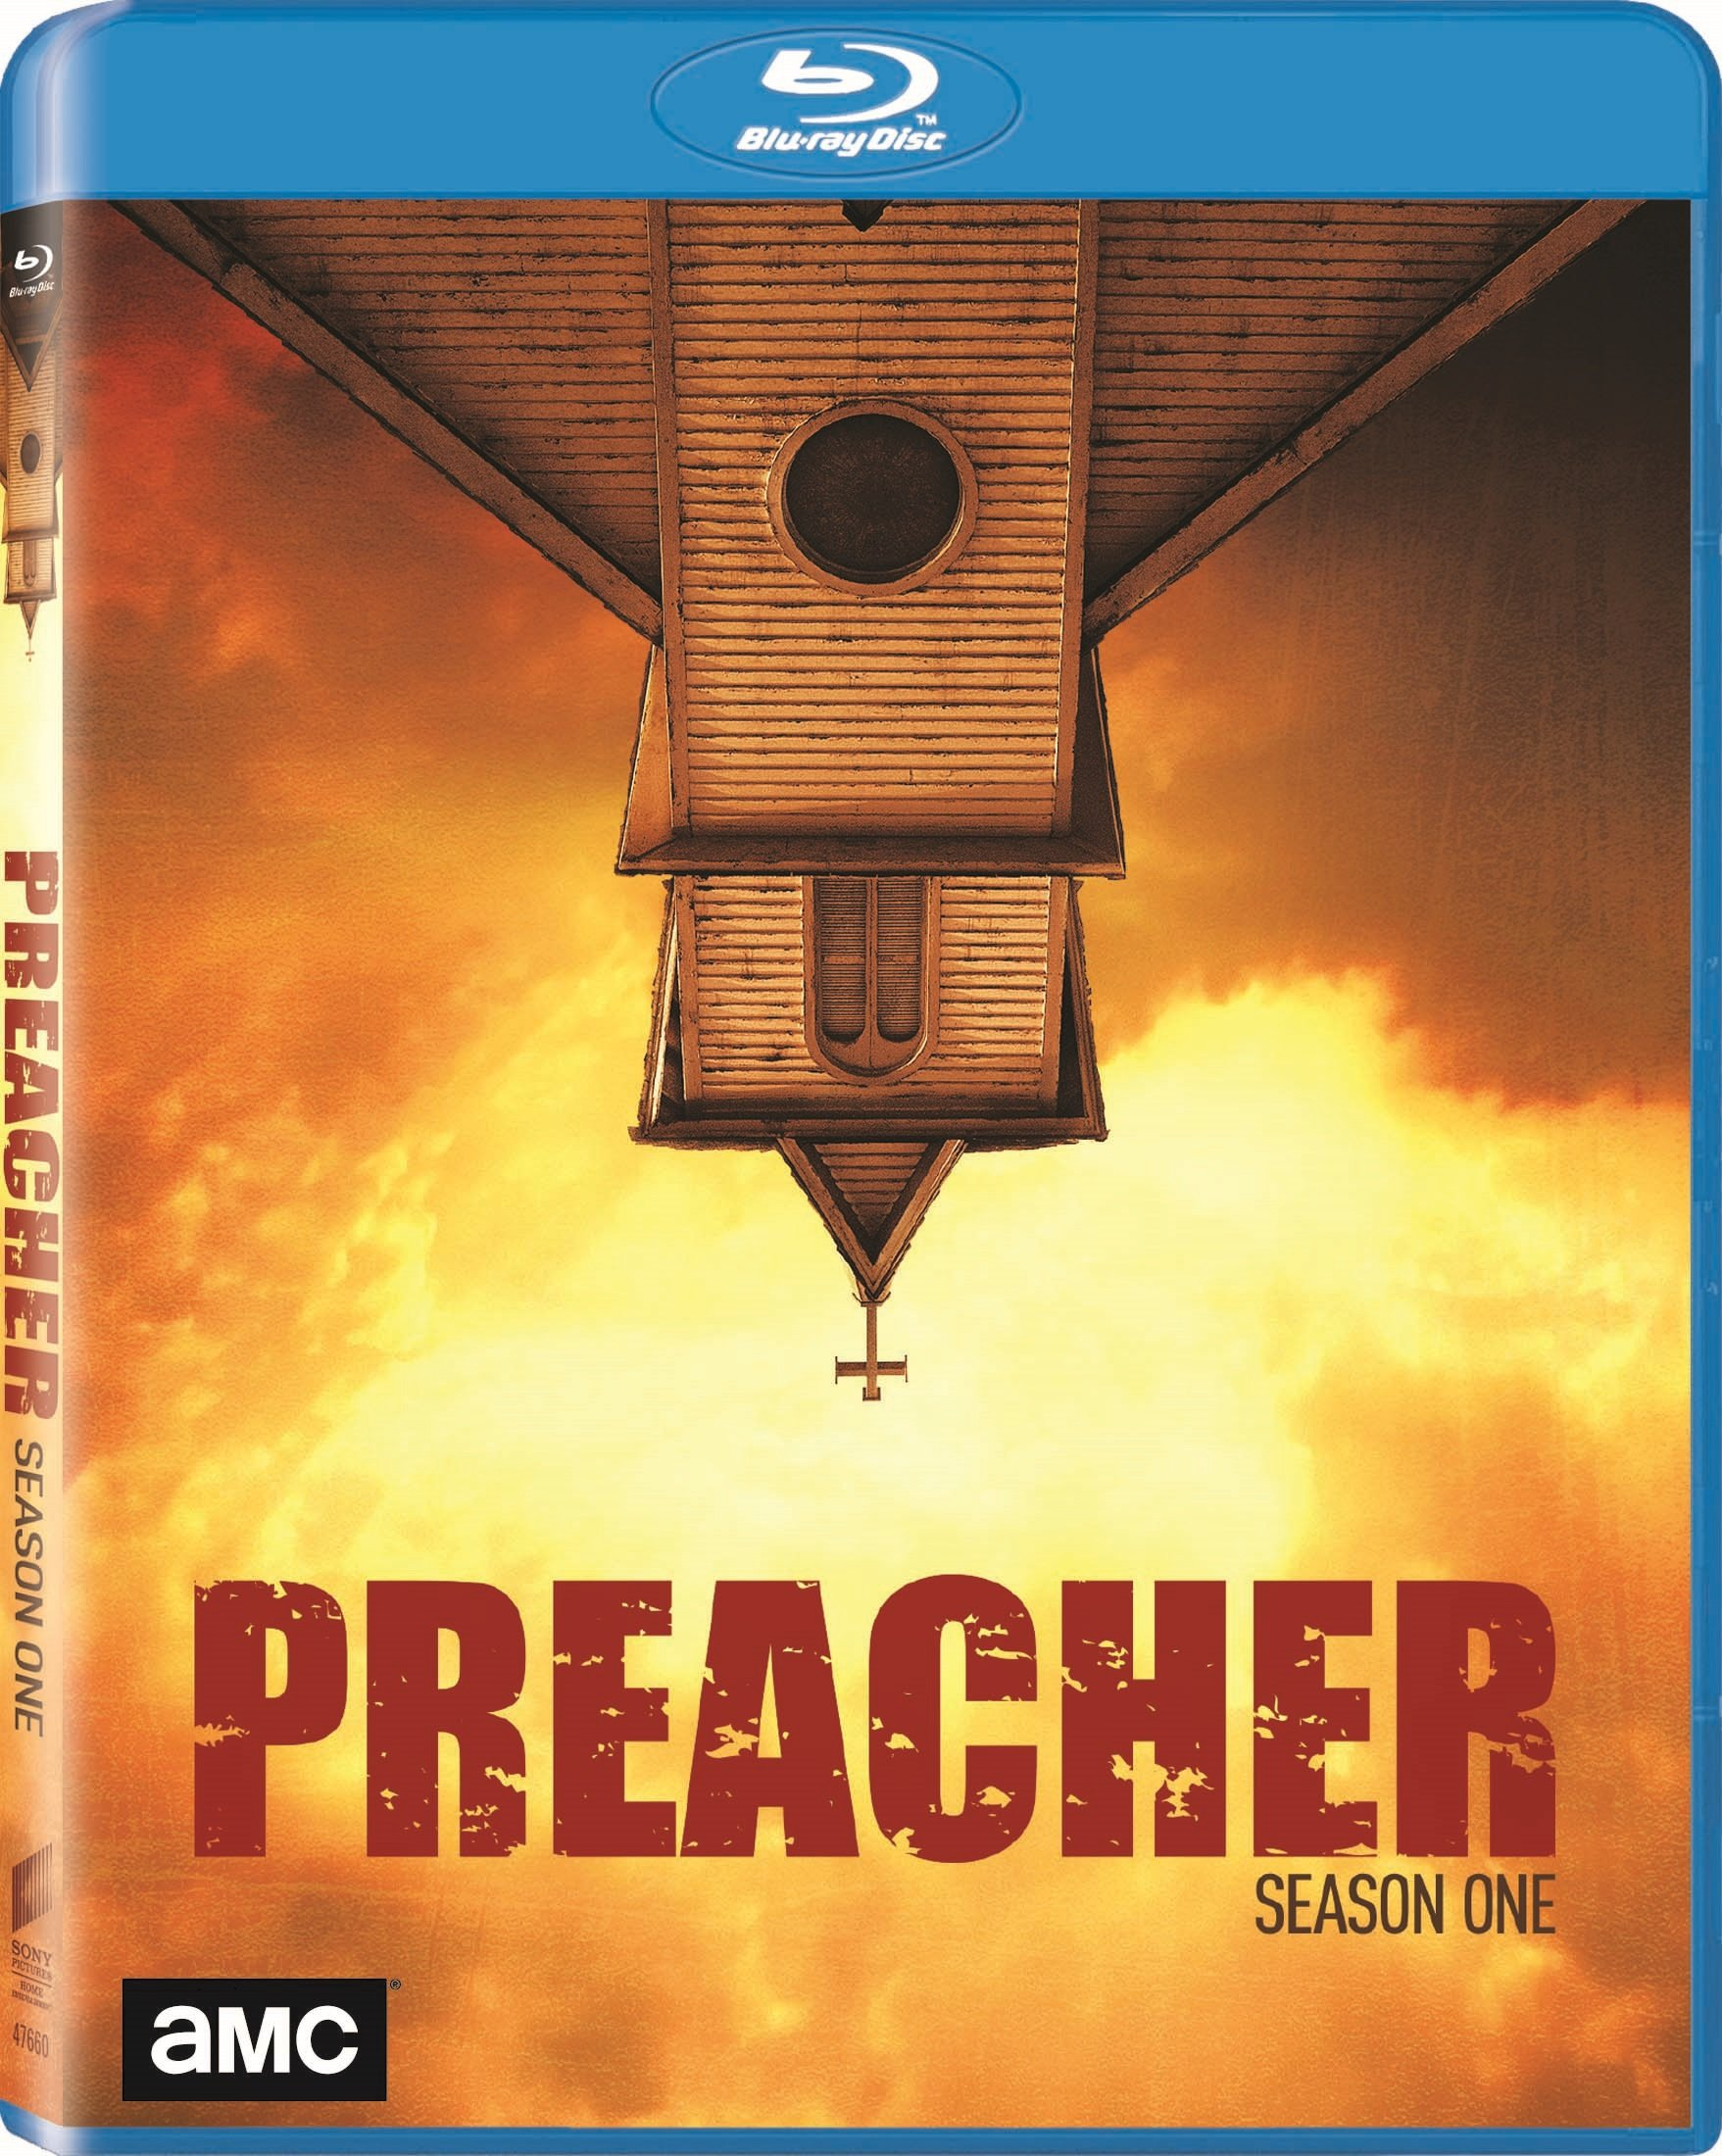 Blu-ray : Preacher: Season One (Ultraviolet Digital Copy, 3 Pack, Dolby, AC-3, Widescreen)